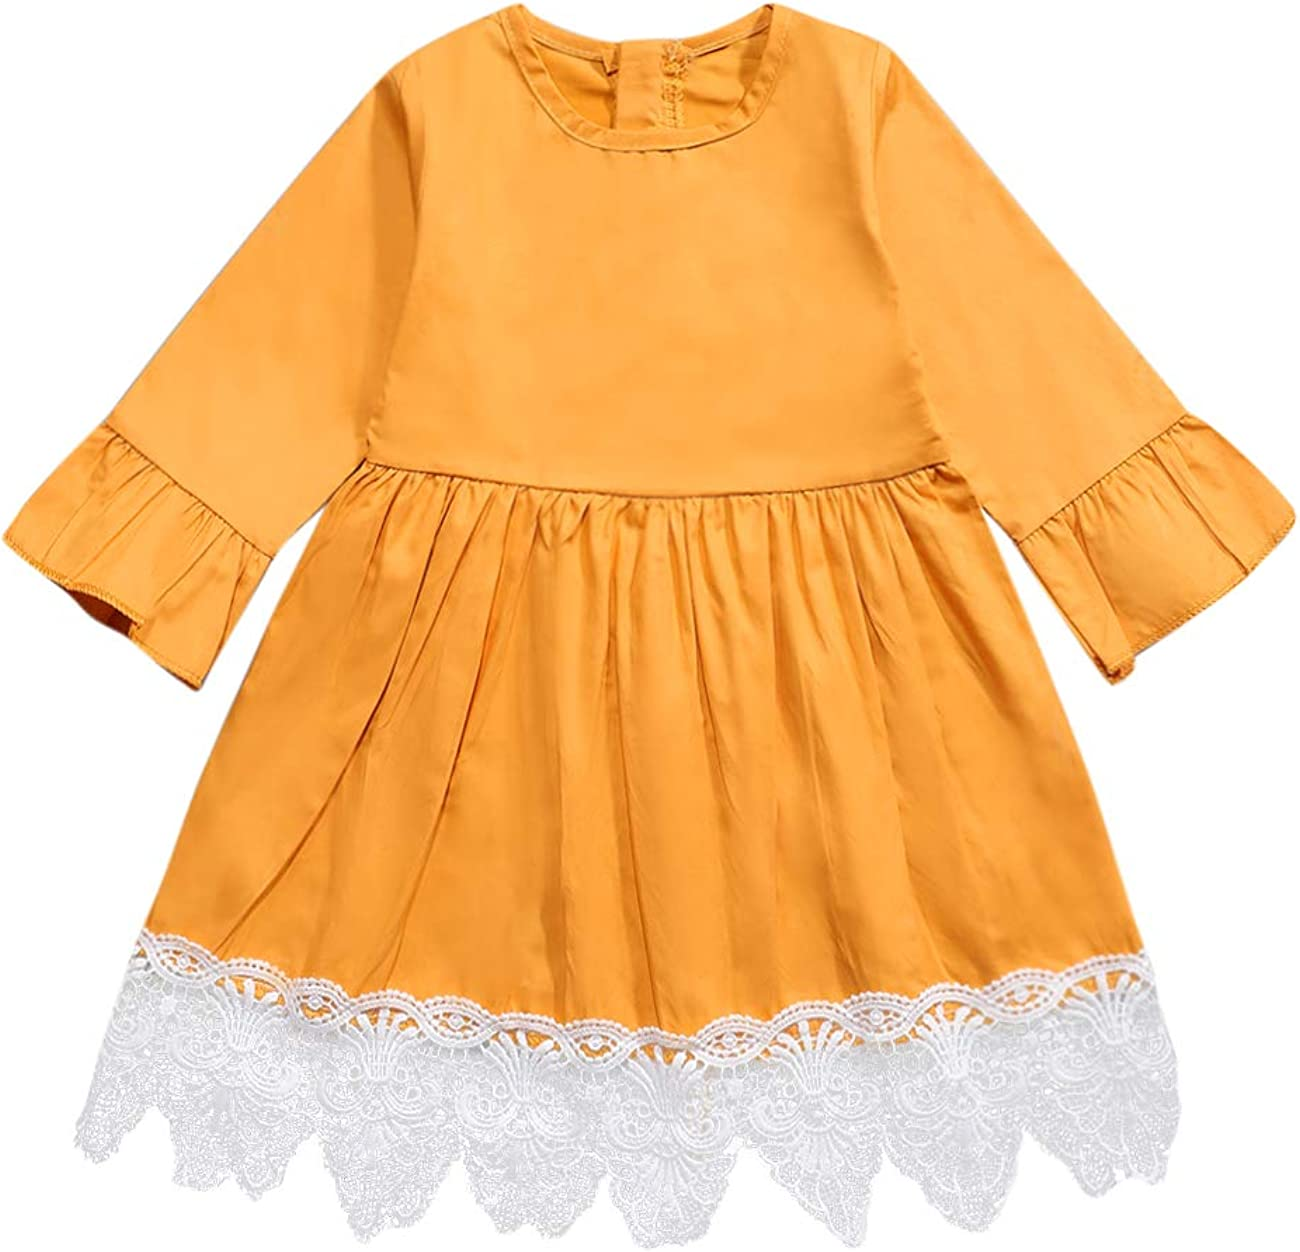 itkidboy Toddler Infant Baby Super popular specialty store Girl Long Dres Sleeve Ruffled Department store Denim